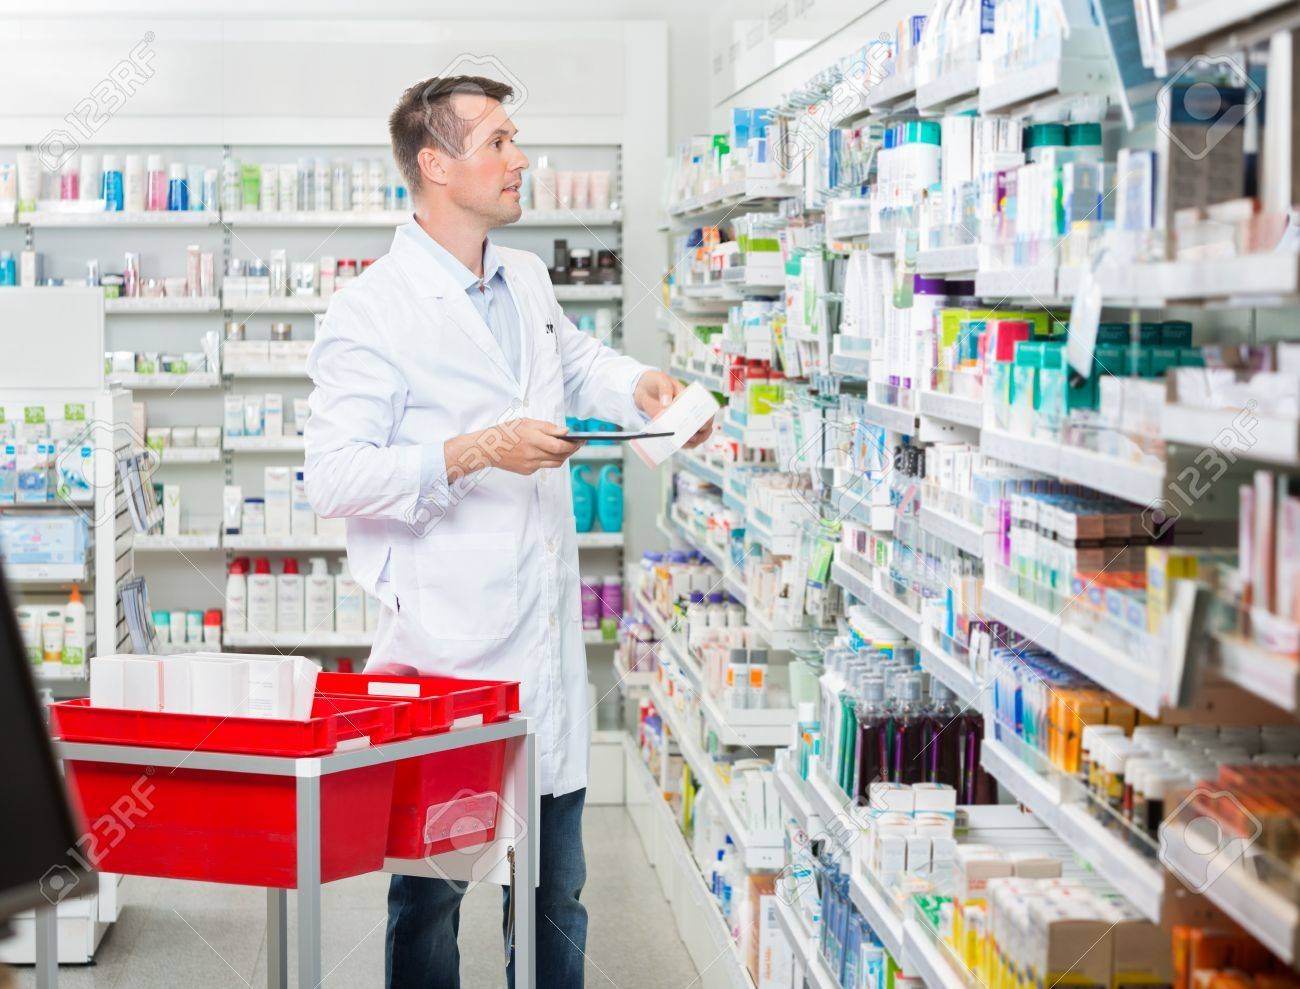 Metà adulto maschio farmacista contando stock, mentre tiene tablet computer in farmacia Archivio Fotografico - 43648451